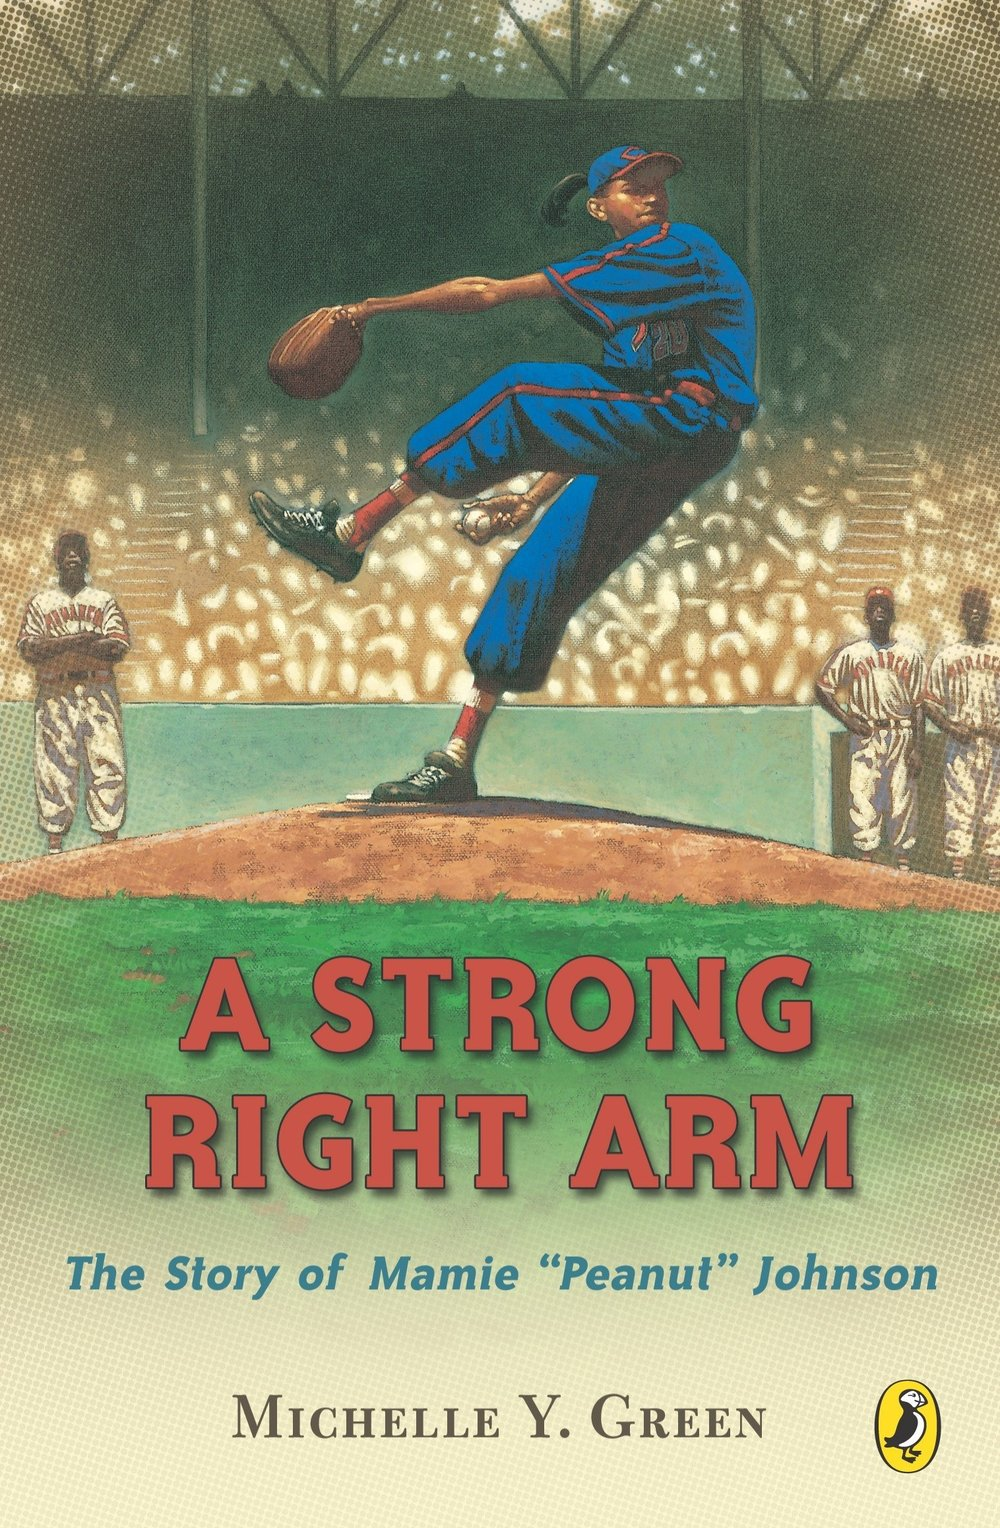 A-Strong-Right-Arm_Green.jpg